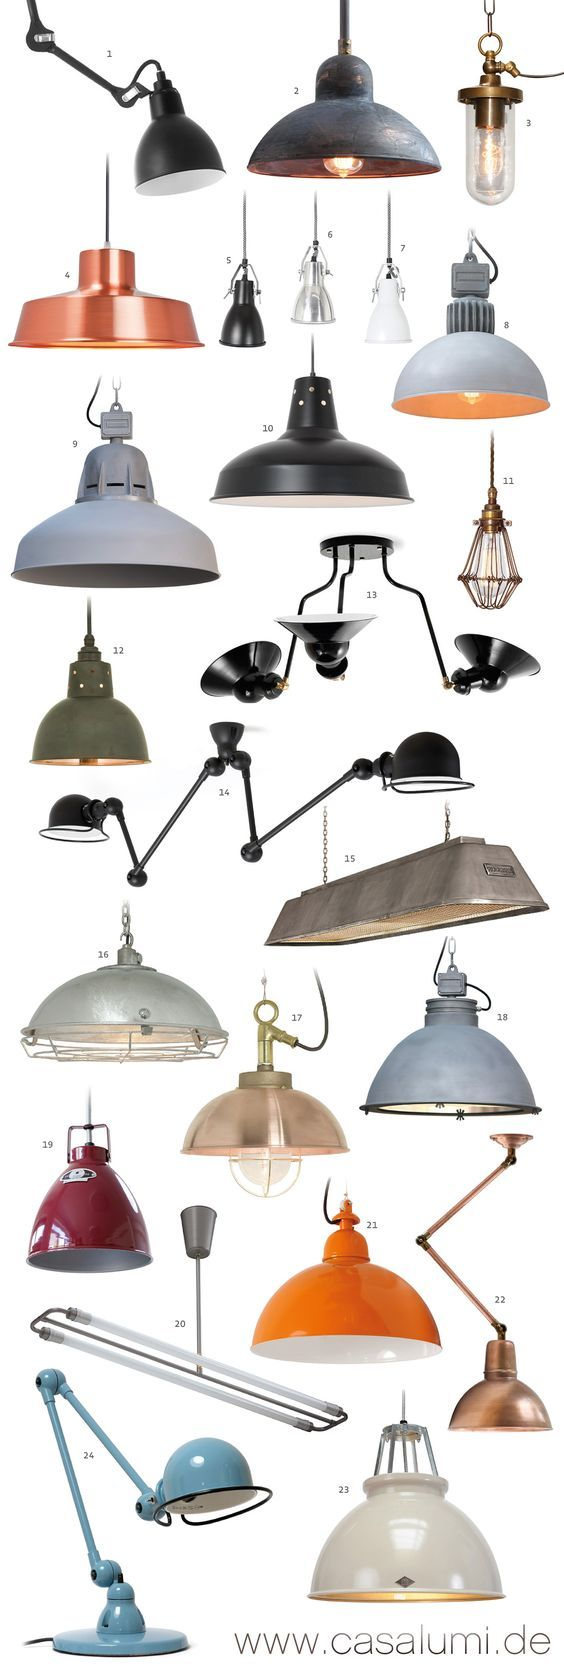 92 best images about unique vintage spotlights on pinterest industrial interior design. Black Bedroom Furniture Sets. Home Design Ideas